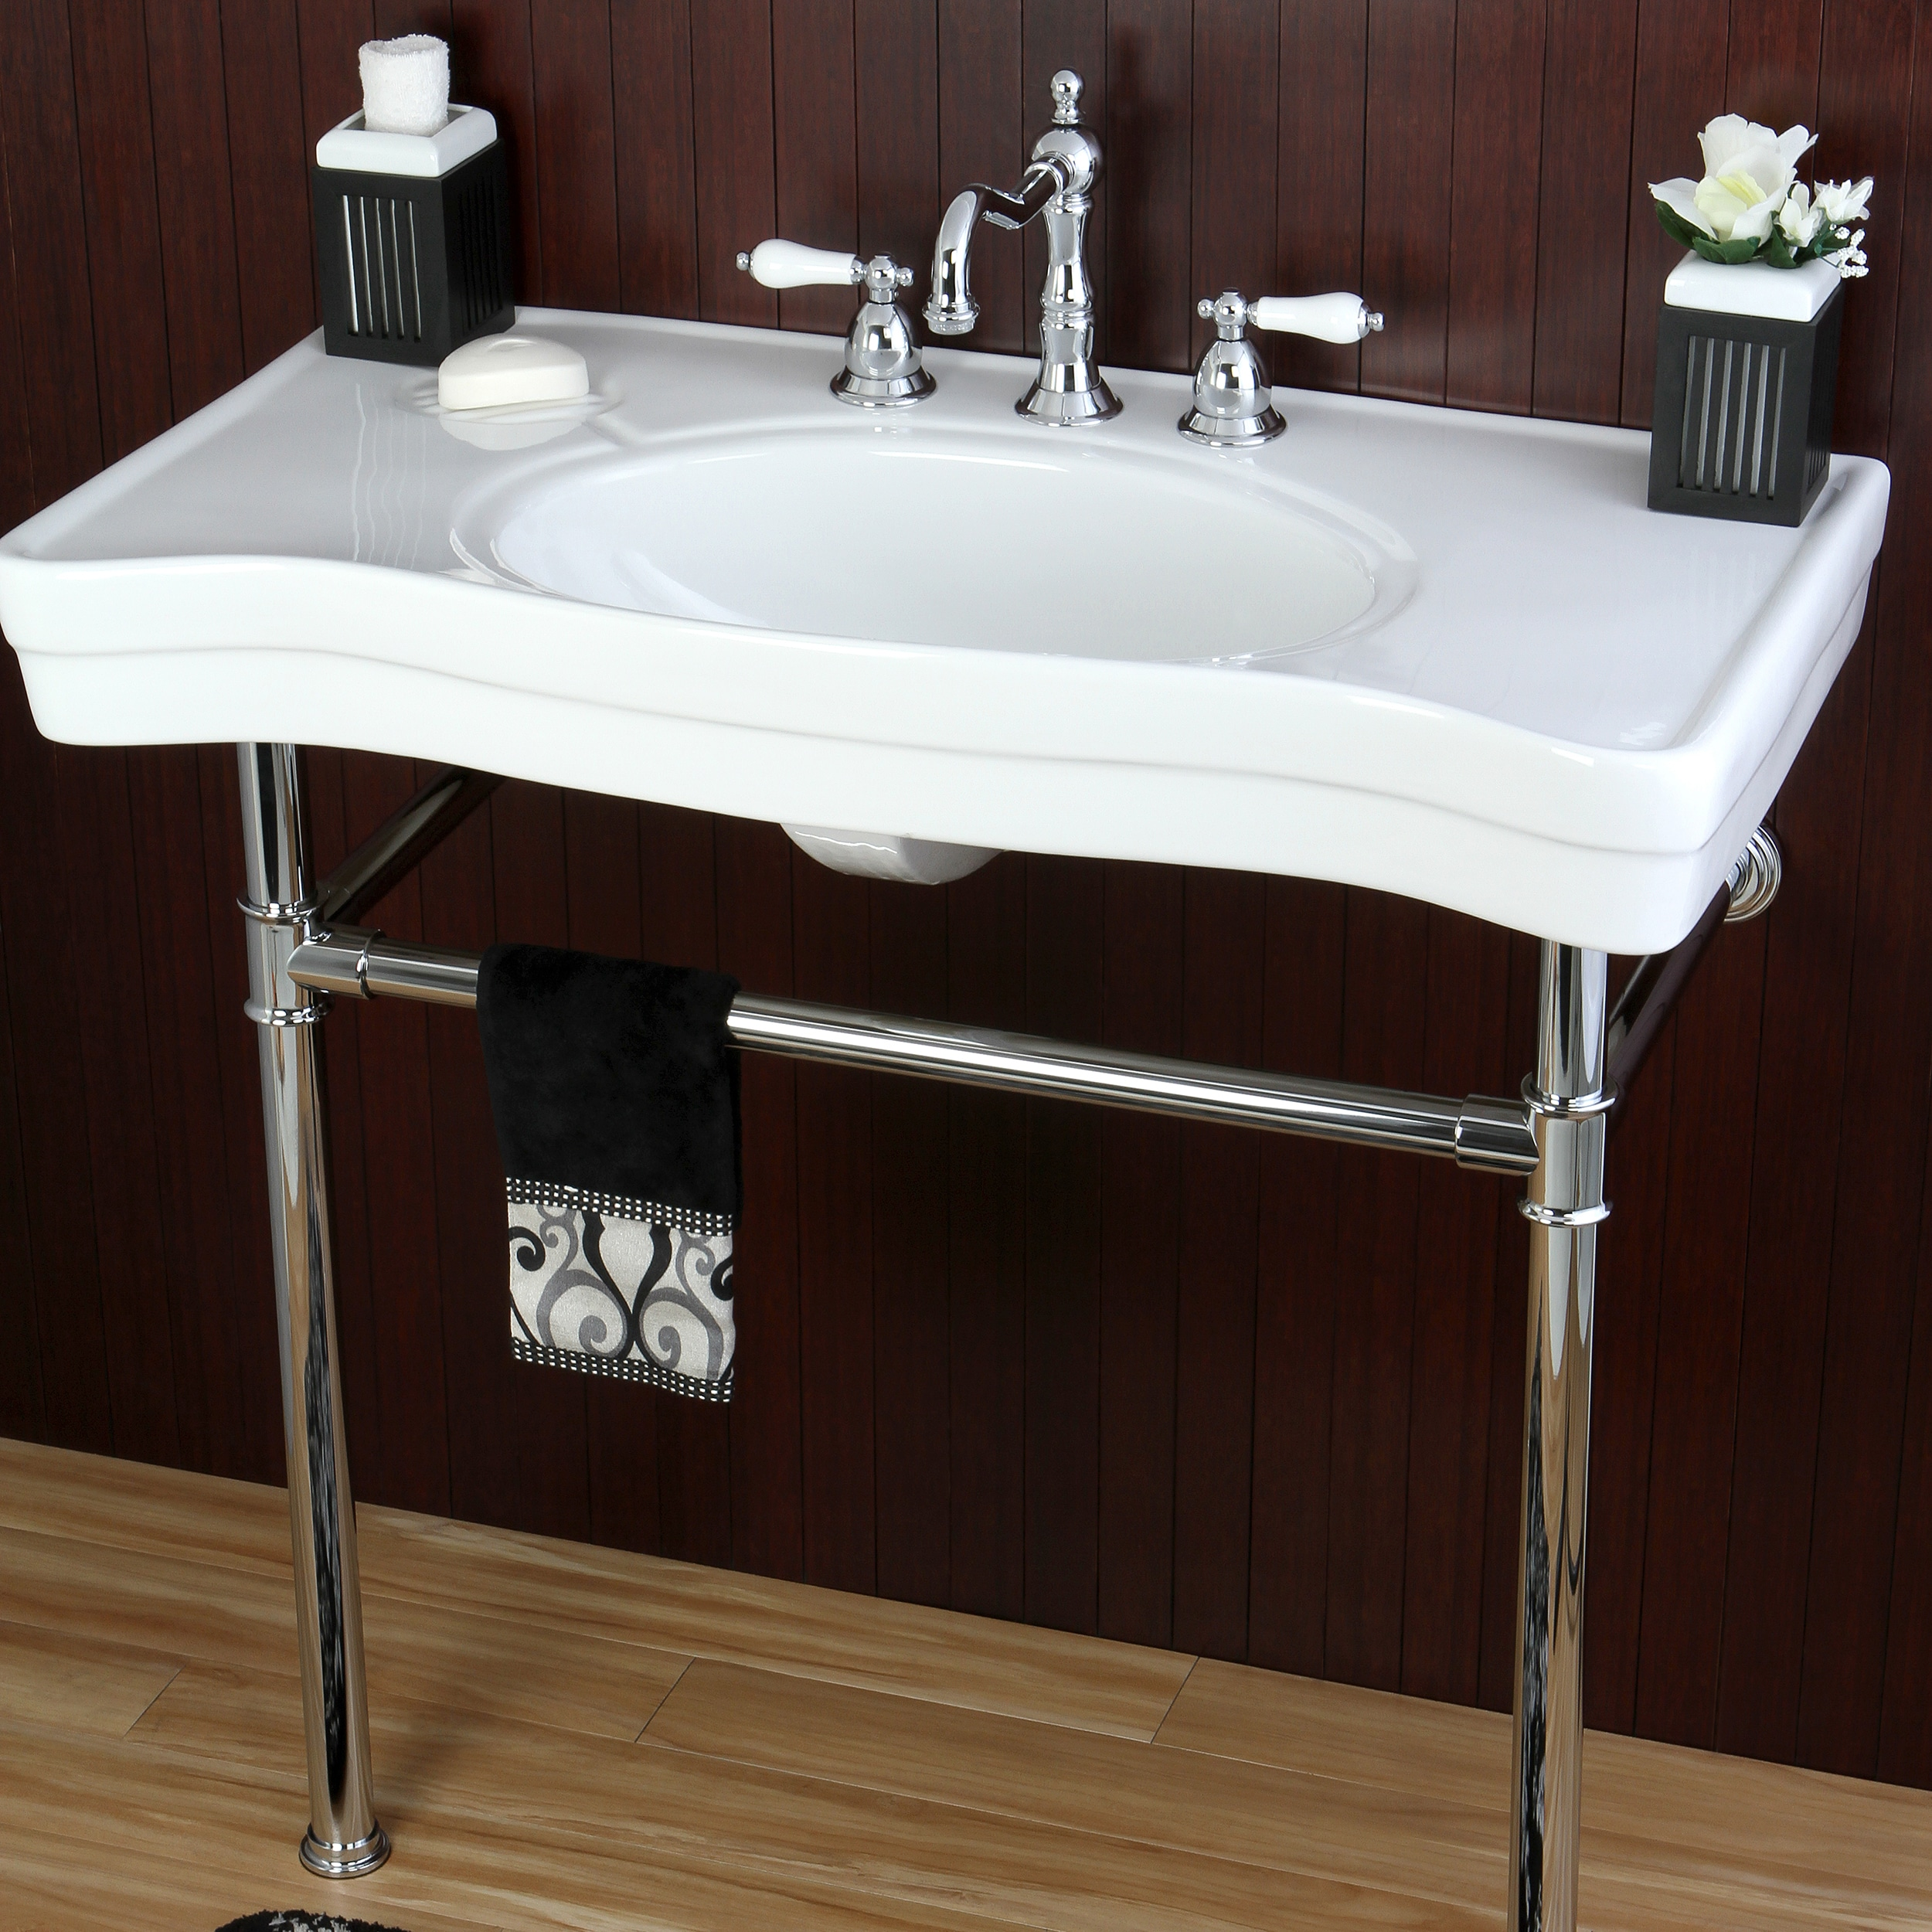 Shop Imperial Vintage 36-inch Wall-mount Chrome Pedestal Bathroom Sink Vanity - Free Shipping Today - Overstock.com - 6573333 & Shop Imperial Vintage 36-inch Wall-mount Chrome Pedestal Bathroom ...